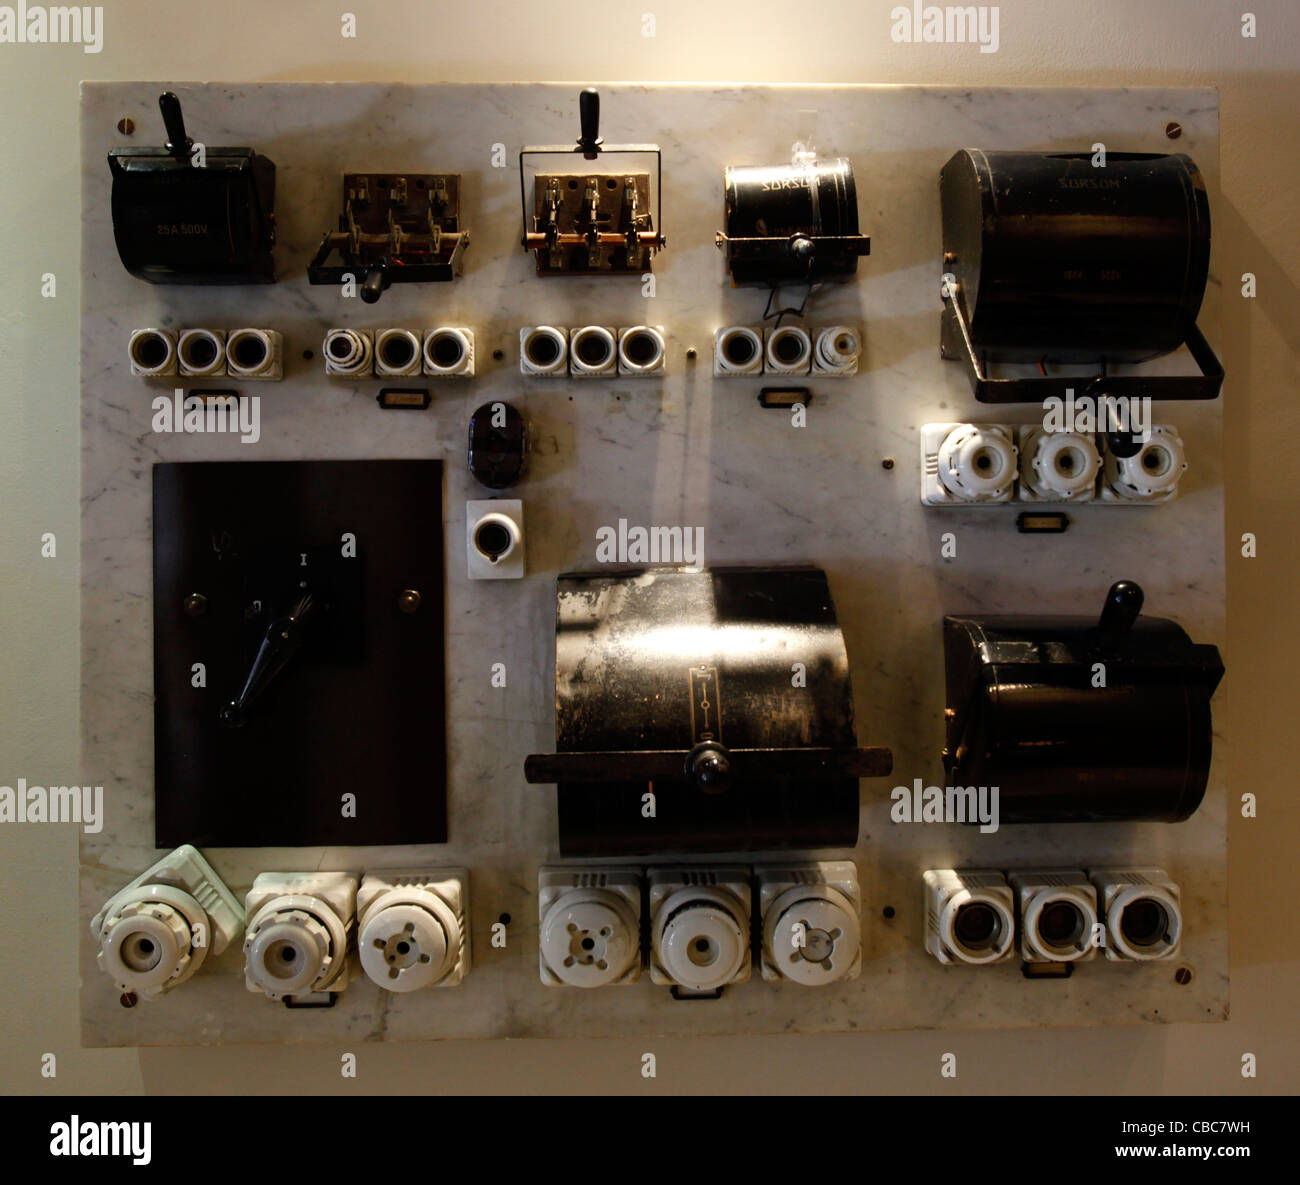 an old electric fuse box switchboard with ceramic fuses CBC7WH fuse box, old fuses stock photo, royalty free image 123046941 alamy fuses for household fuse box at nearapp.co